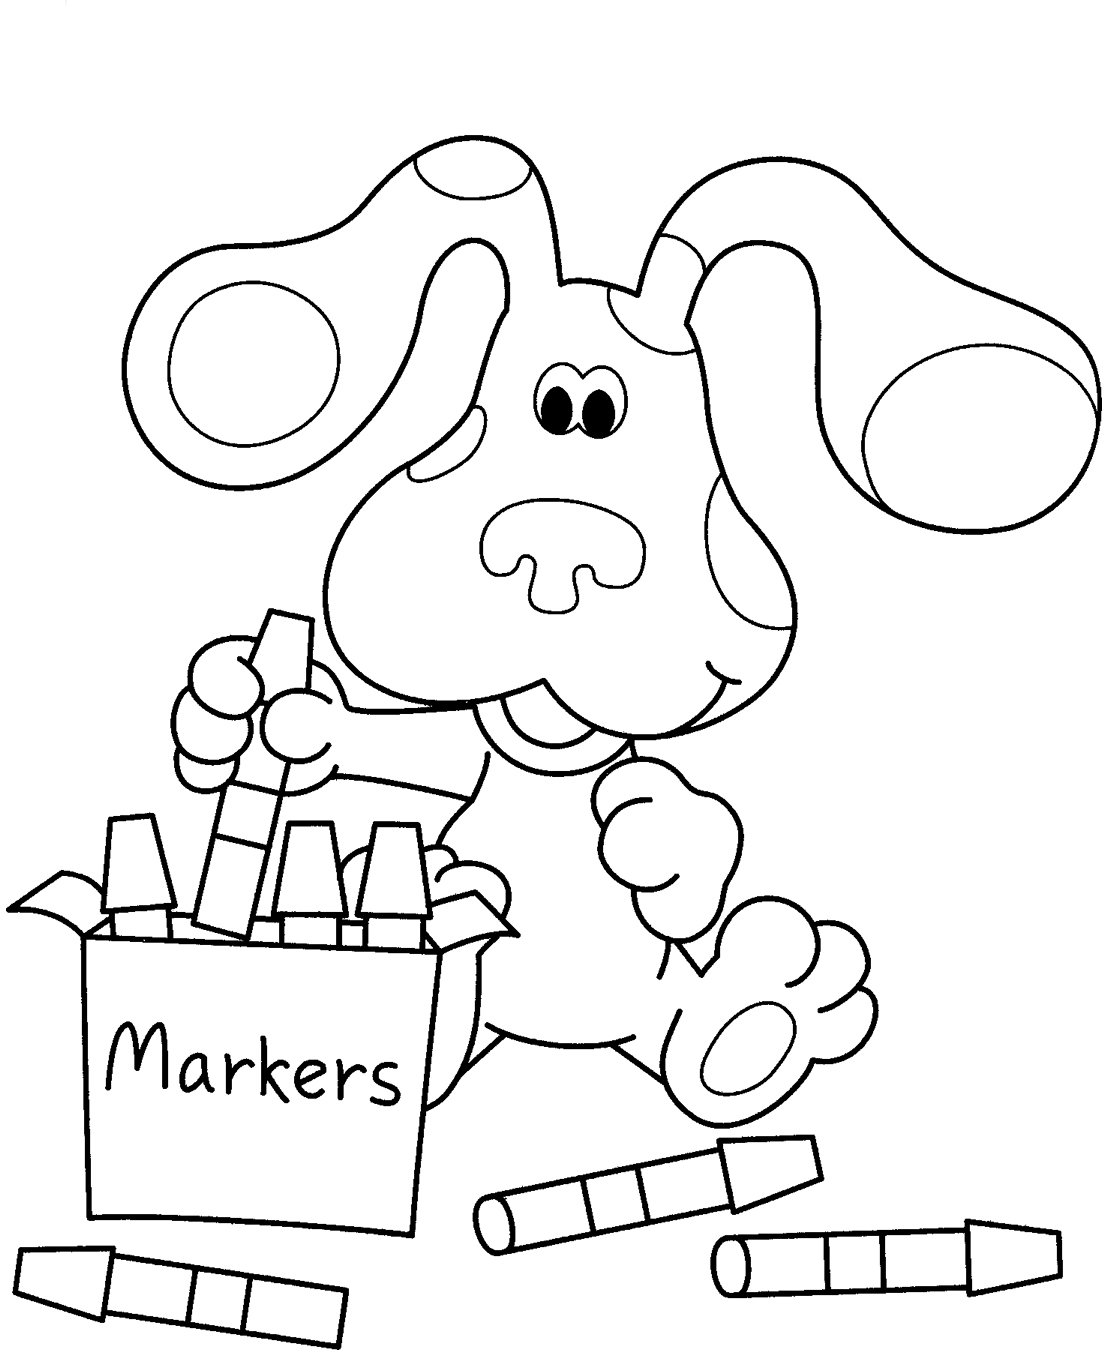 Free Printable Blues Clues Coloring Pages For Kids Free Coloring Pages To Print